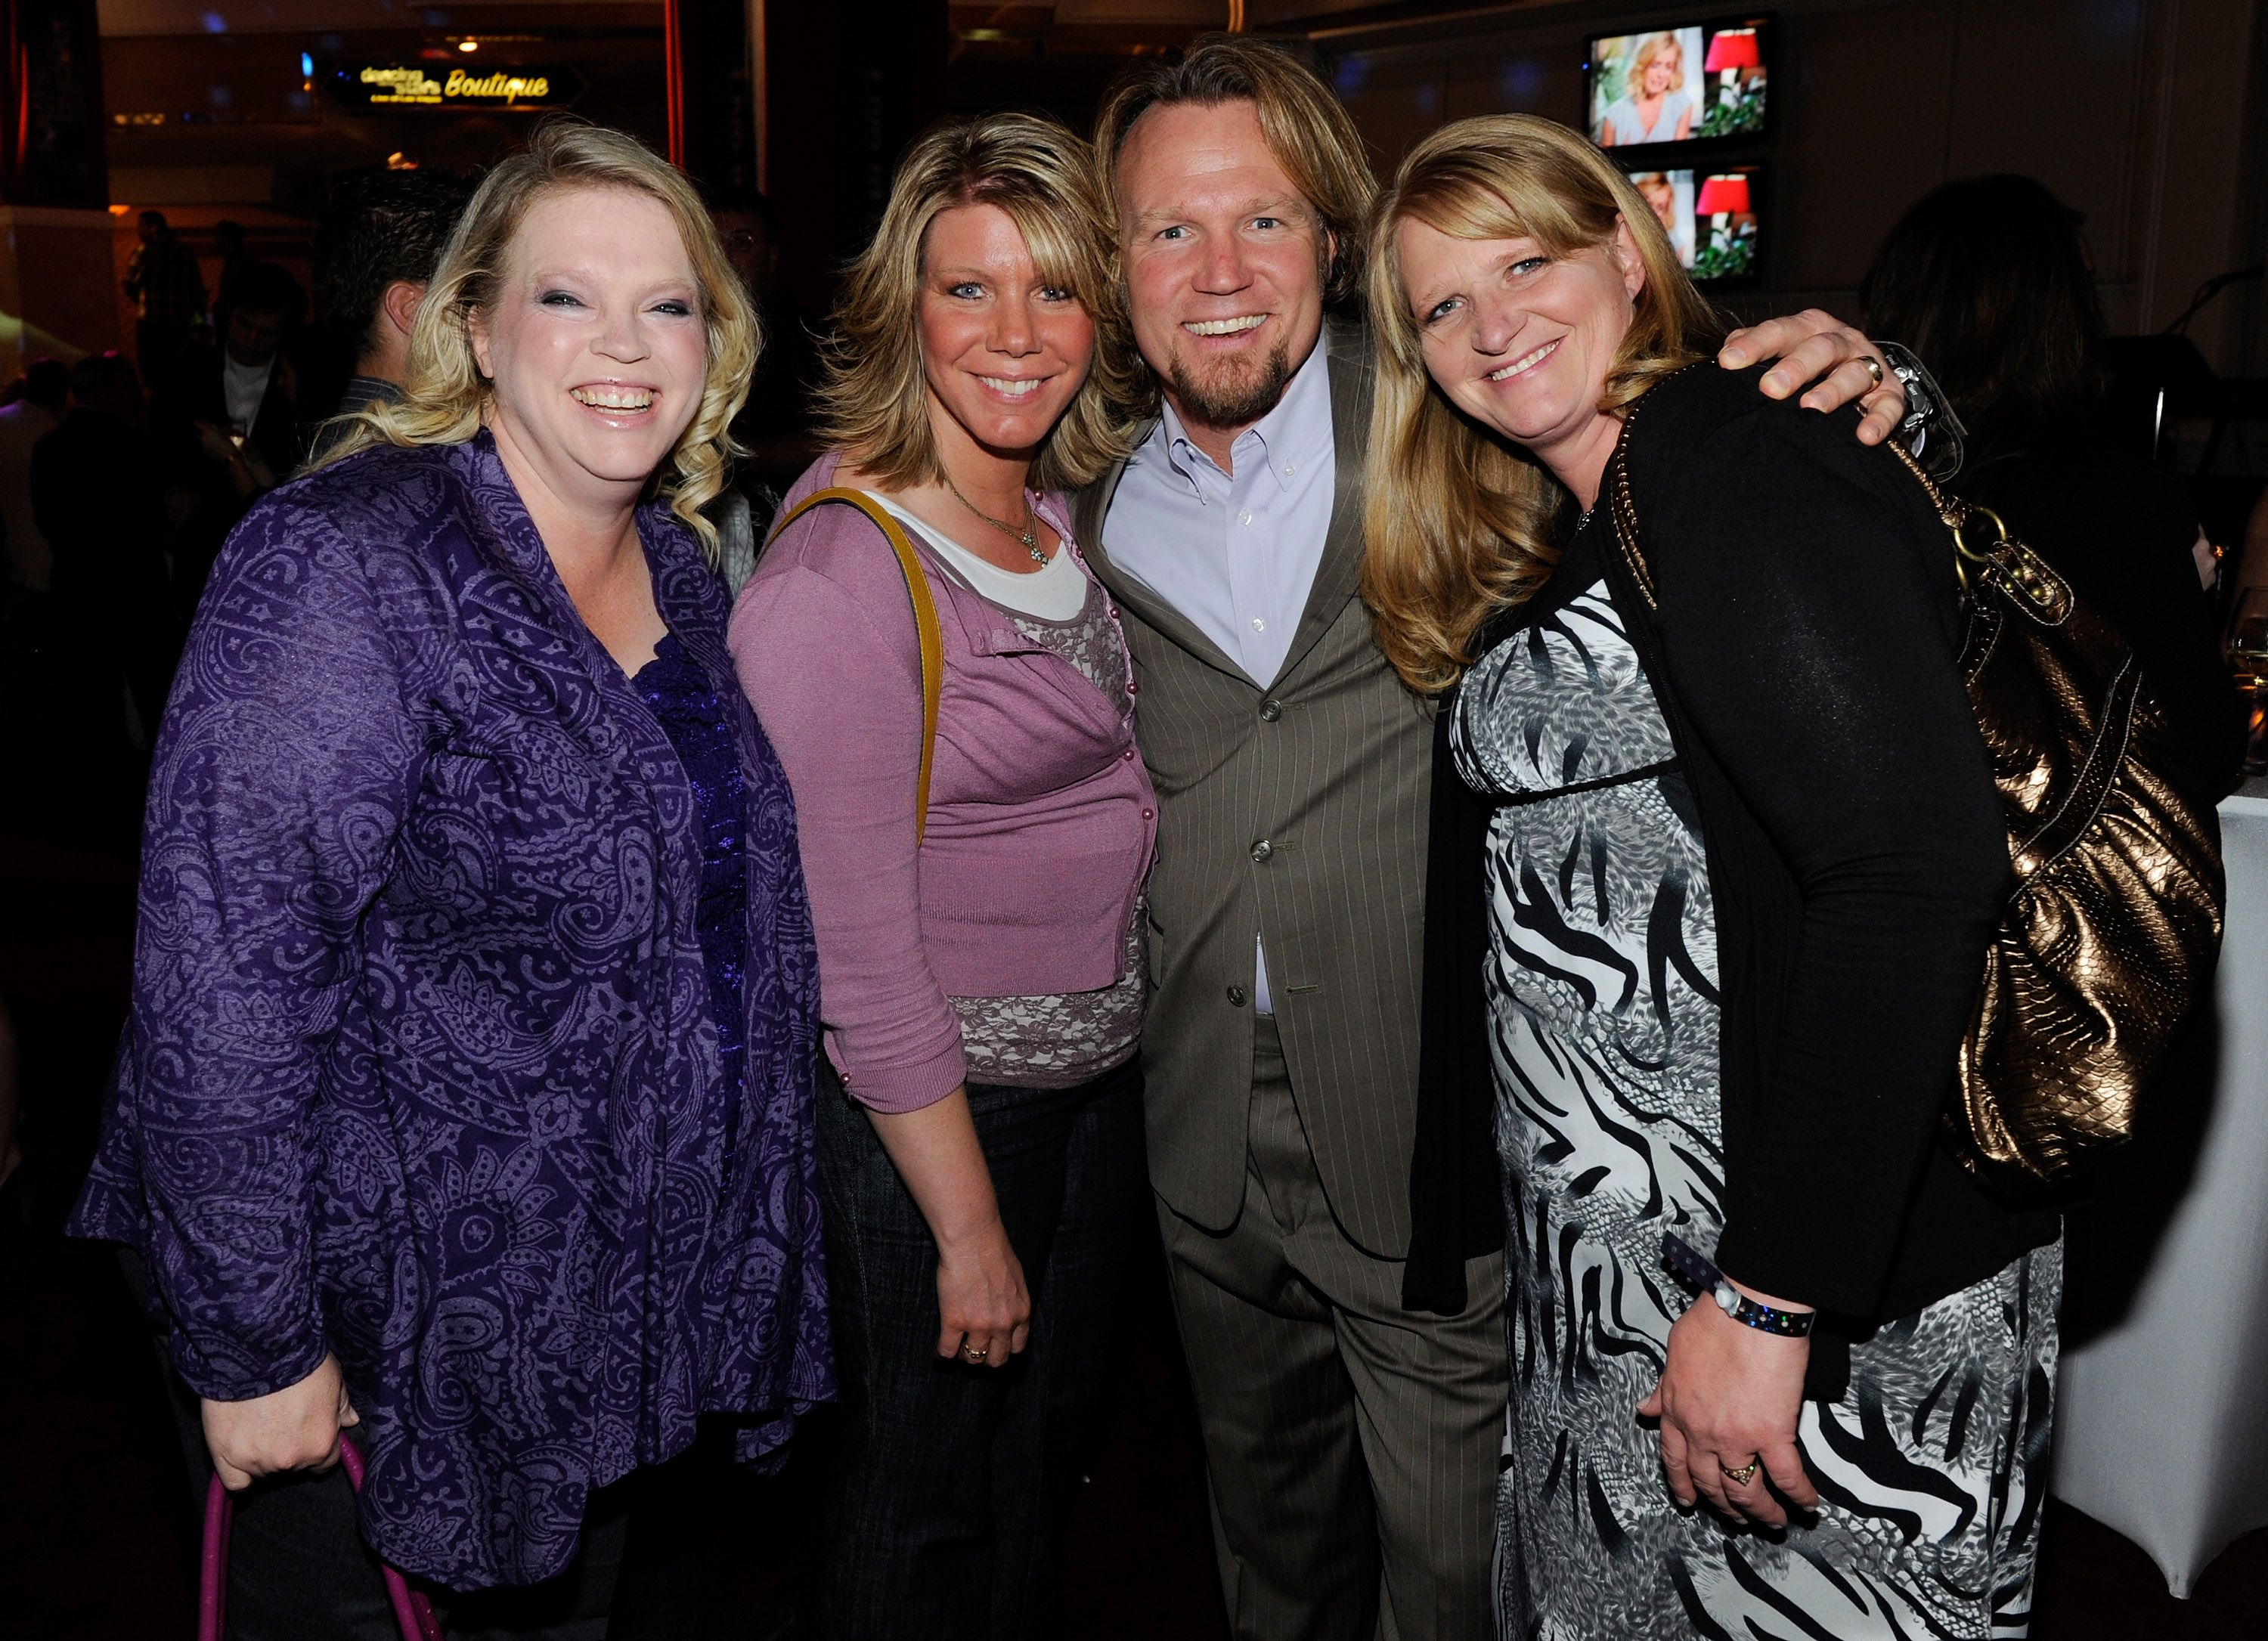 """Janelle Brown, Meri Brown, Kody Brown and Christine Brown from """"Sister Wives"""" at a pre-show reception for the grand opening of """"Dancing With the Stars on April 13, 2012 